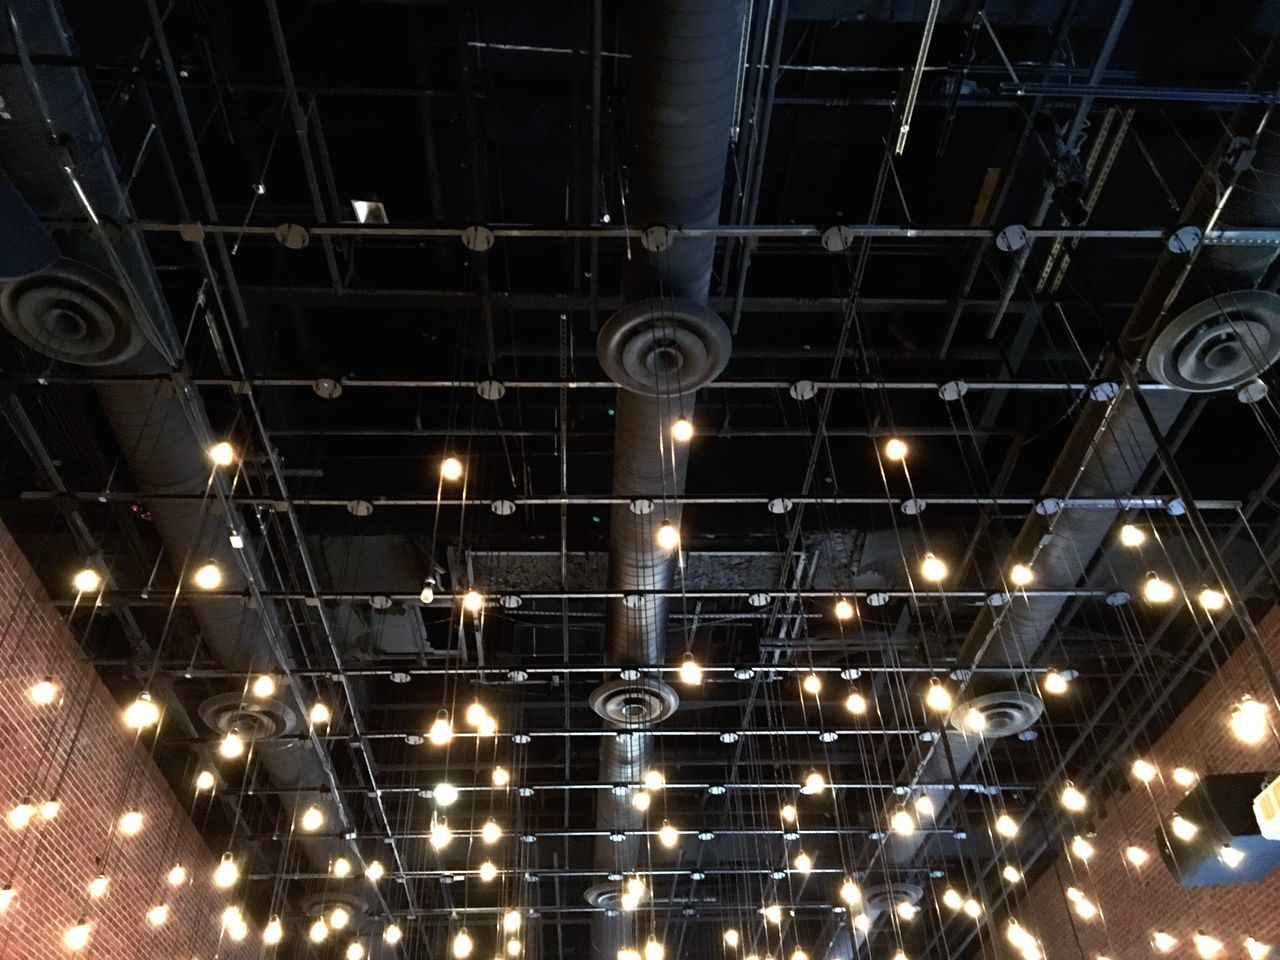 Looking Up Light Light And Shadow Cities At Night The Architect - 2016 EyeEm Awards Architecture_collection Design Repetition Pattern Lighting Equipment Ceiling Ceiling Lights Ceiling Design Open Symmetry No People Illuminated Lighting Abstract Engineering Decor Beautifully Organized